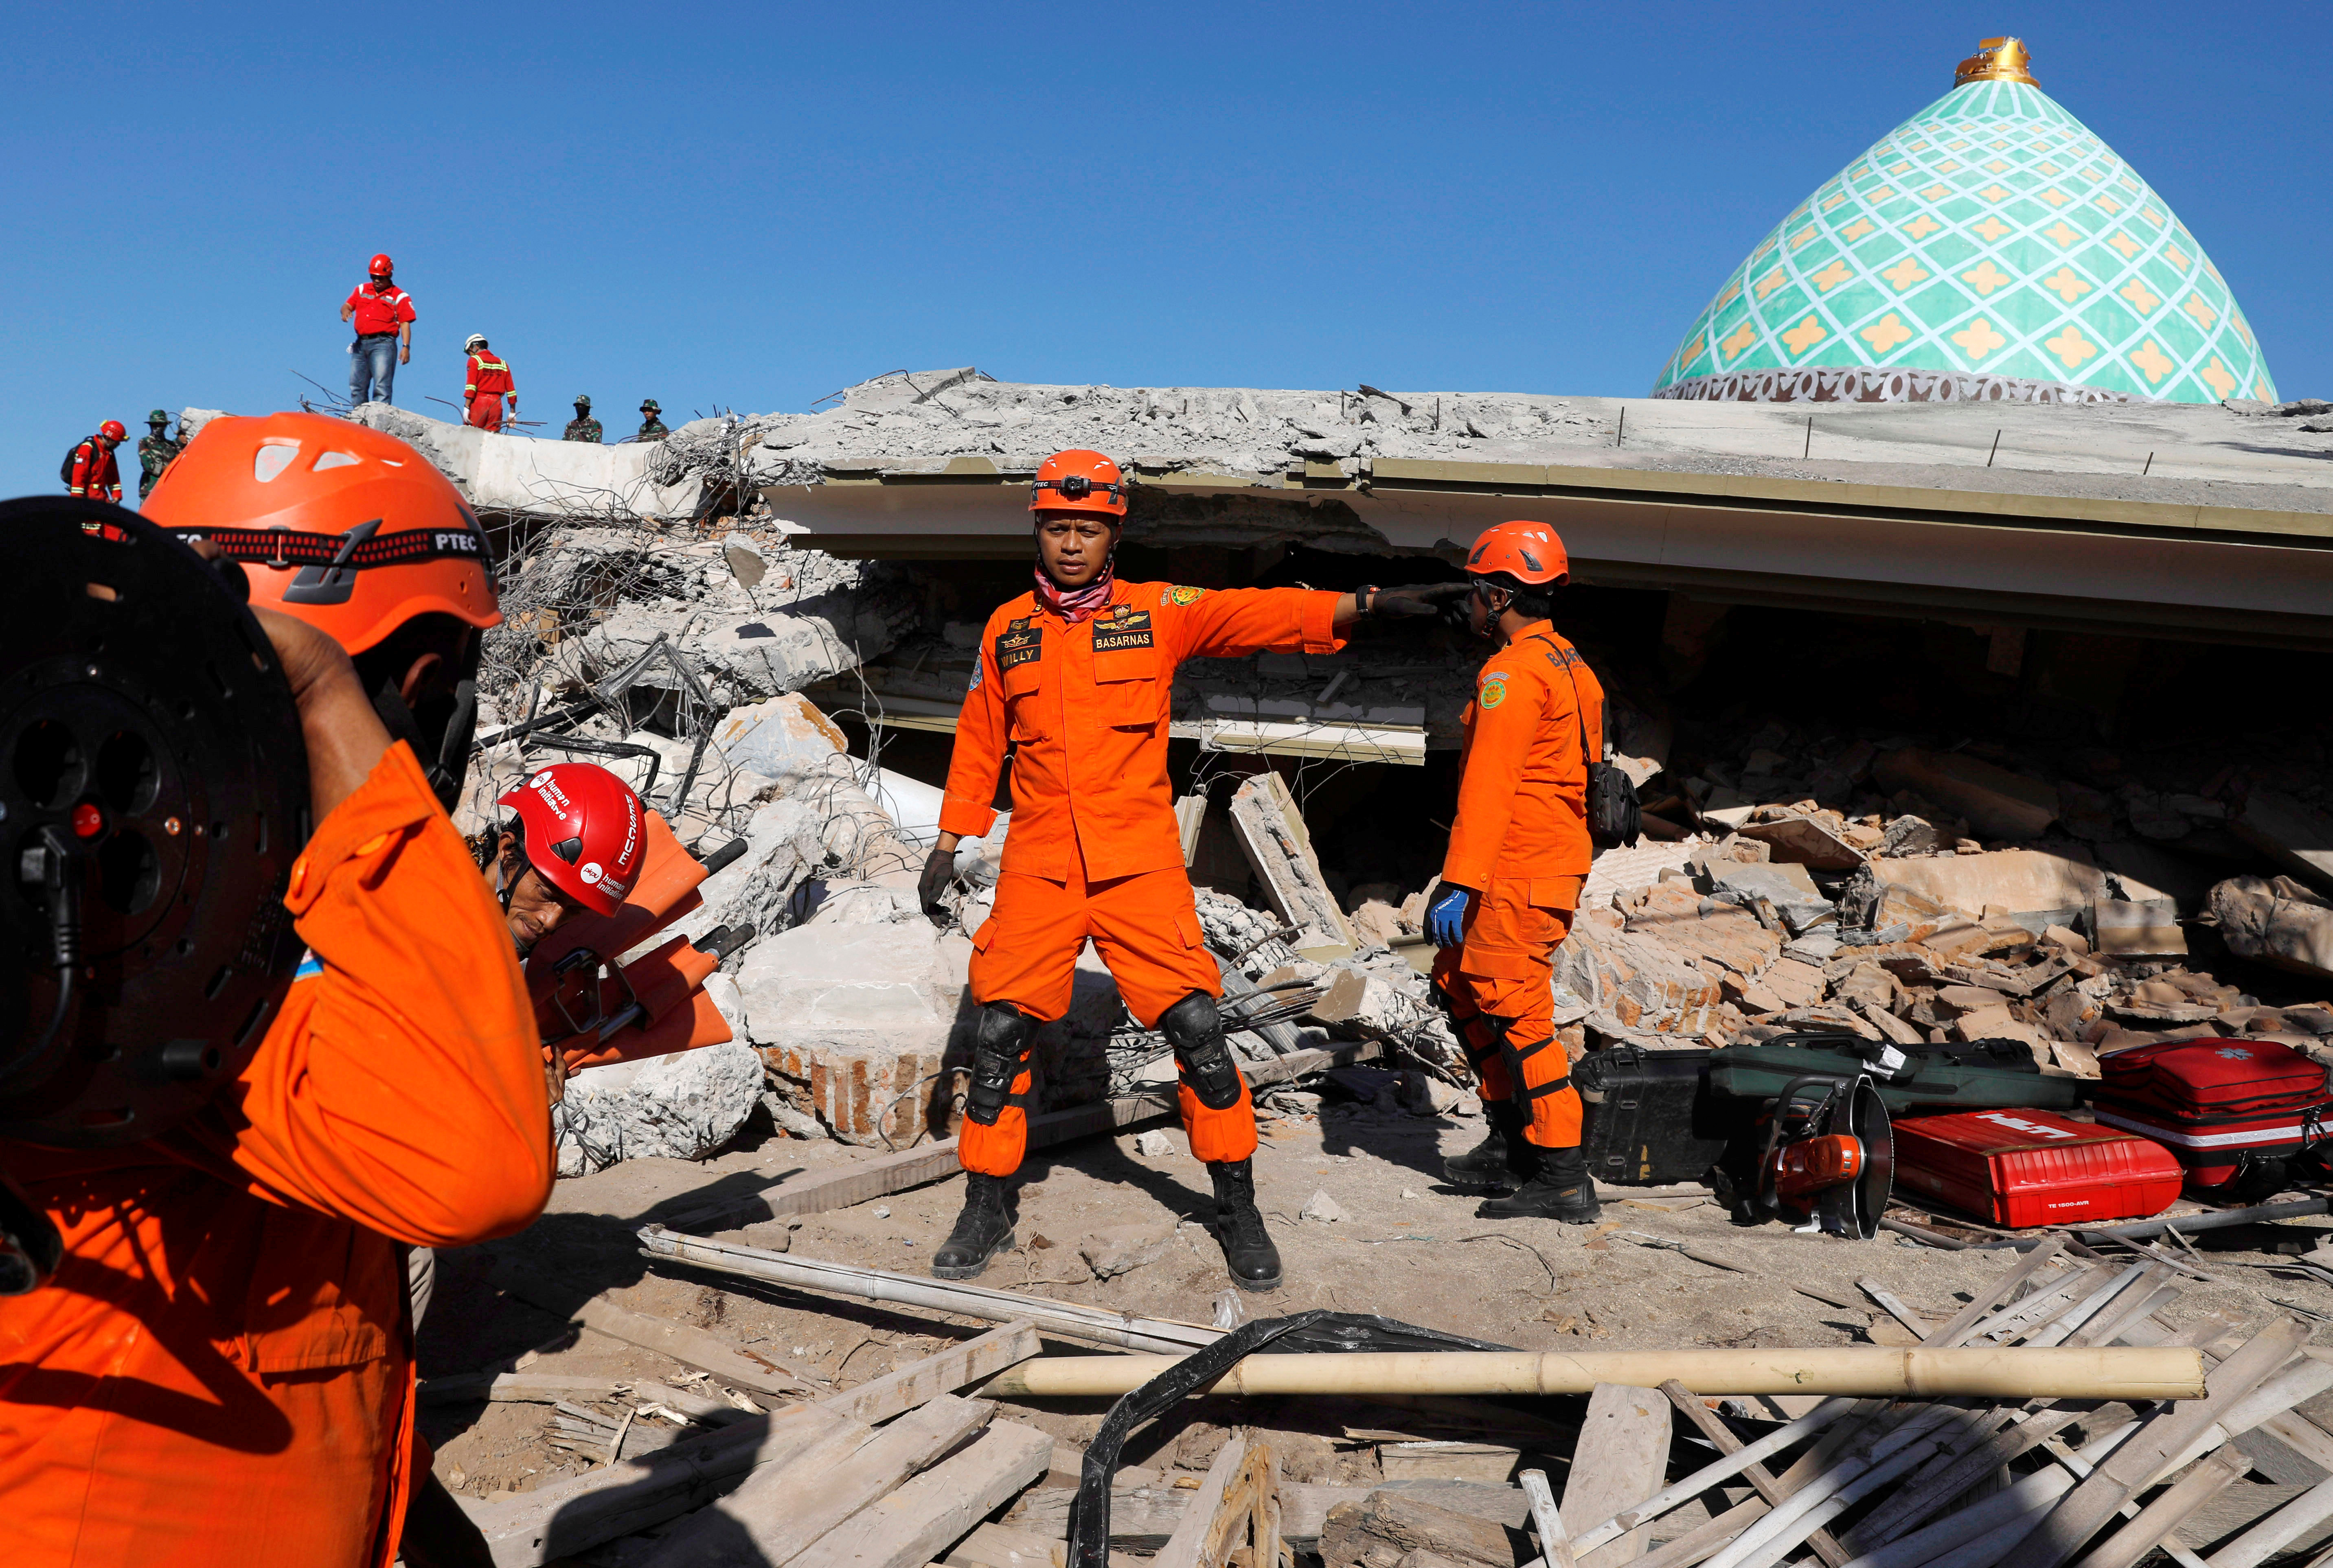 Rescue team members prepare to find people trapped inside a mosque after an earthquake hit on Sunday in Pemenang, Lombok Island, Indonesia, August 8, 2018. REUTERS/Beawiharta